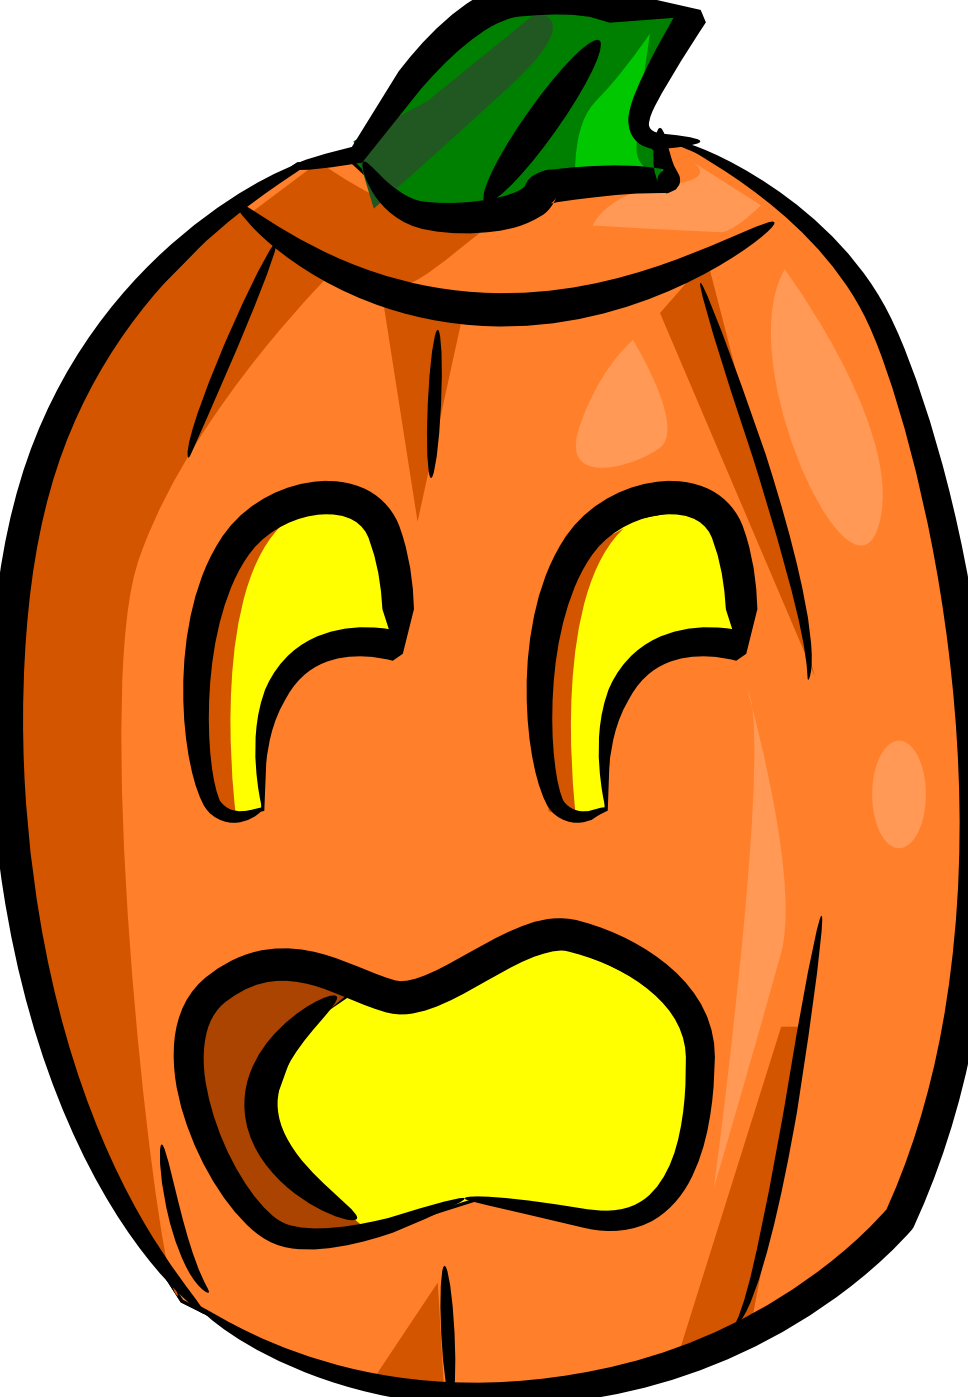 Scared pumpkin clipart image black and white download Jack o lantern totally free clip art - Clipartix image black and white download